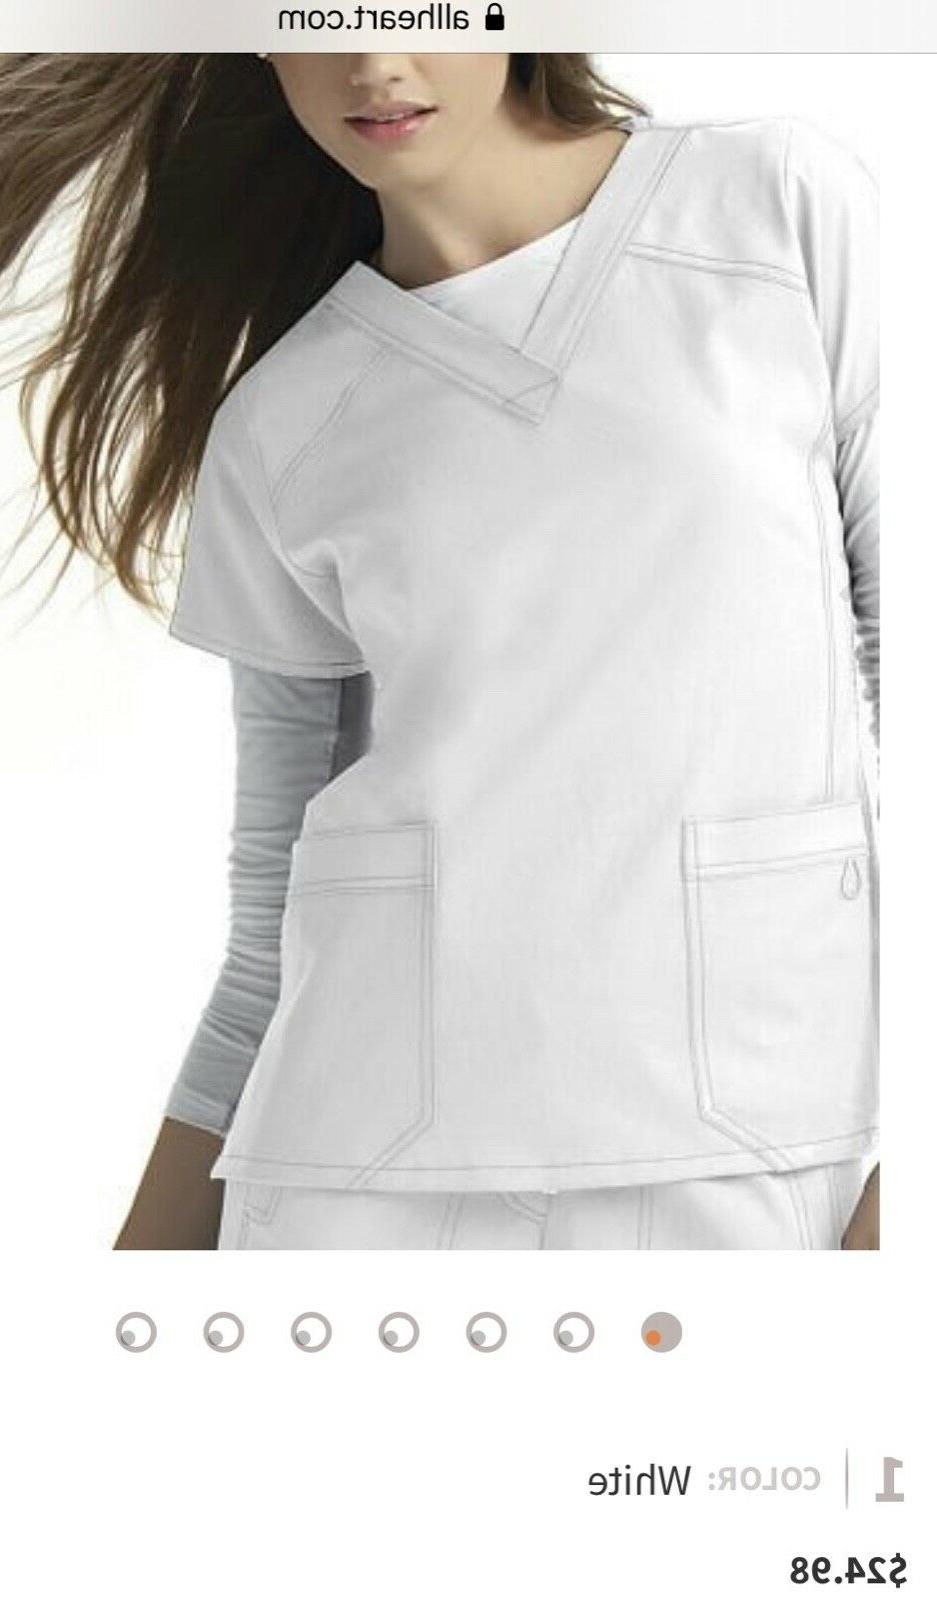 Wonder four stretch Uniforms nurse shirt blouse white